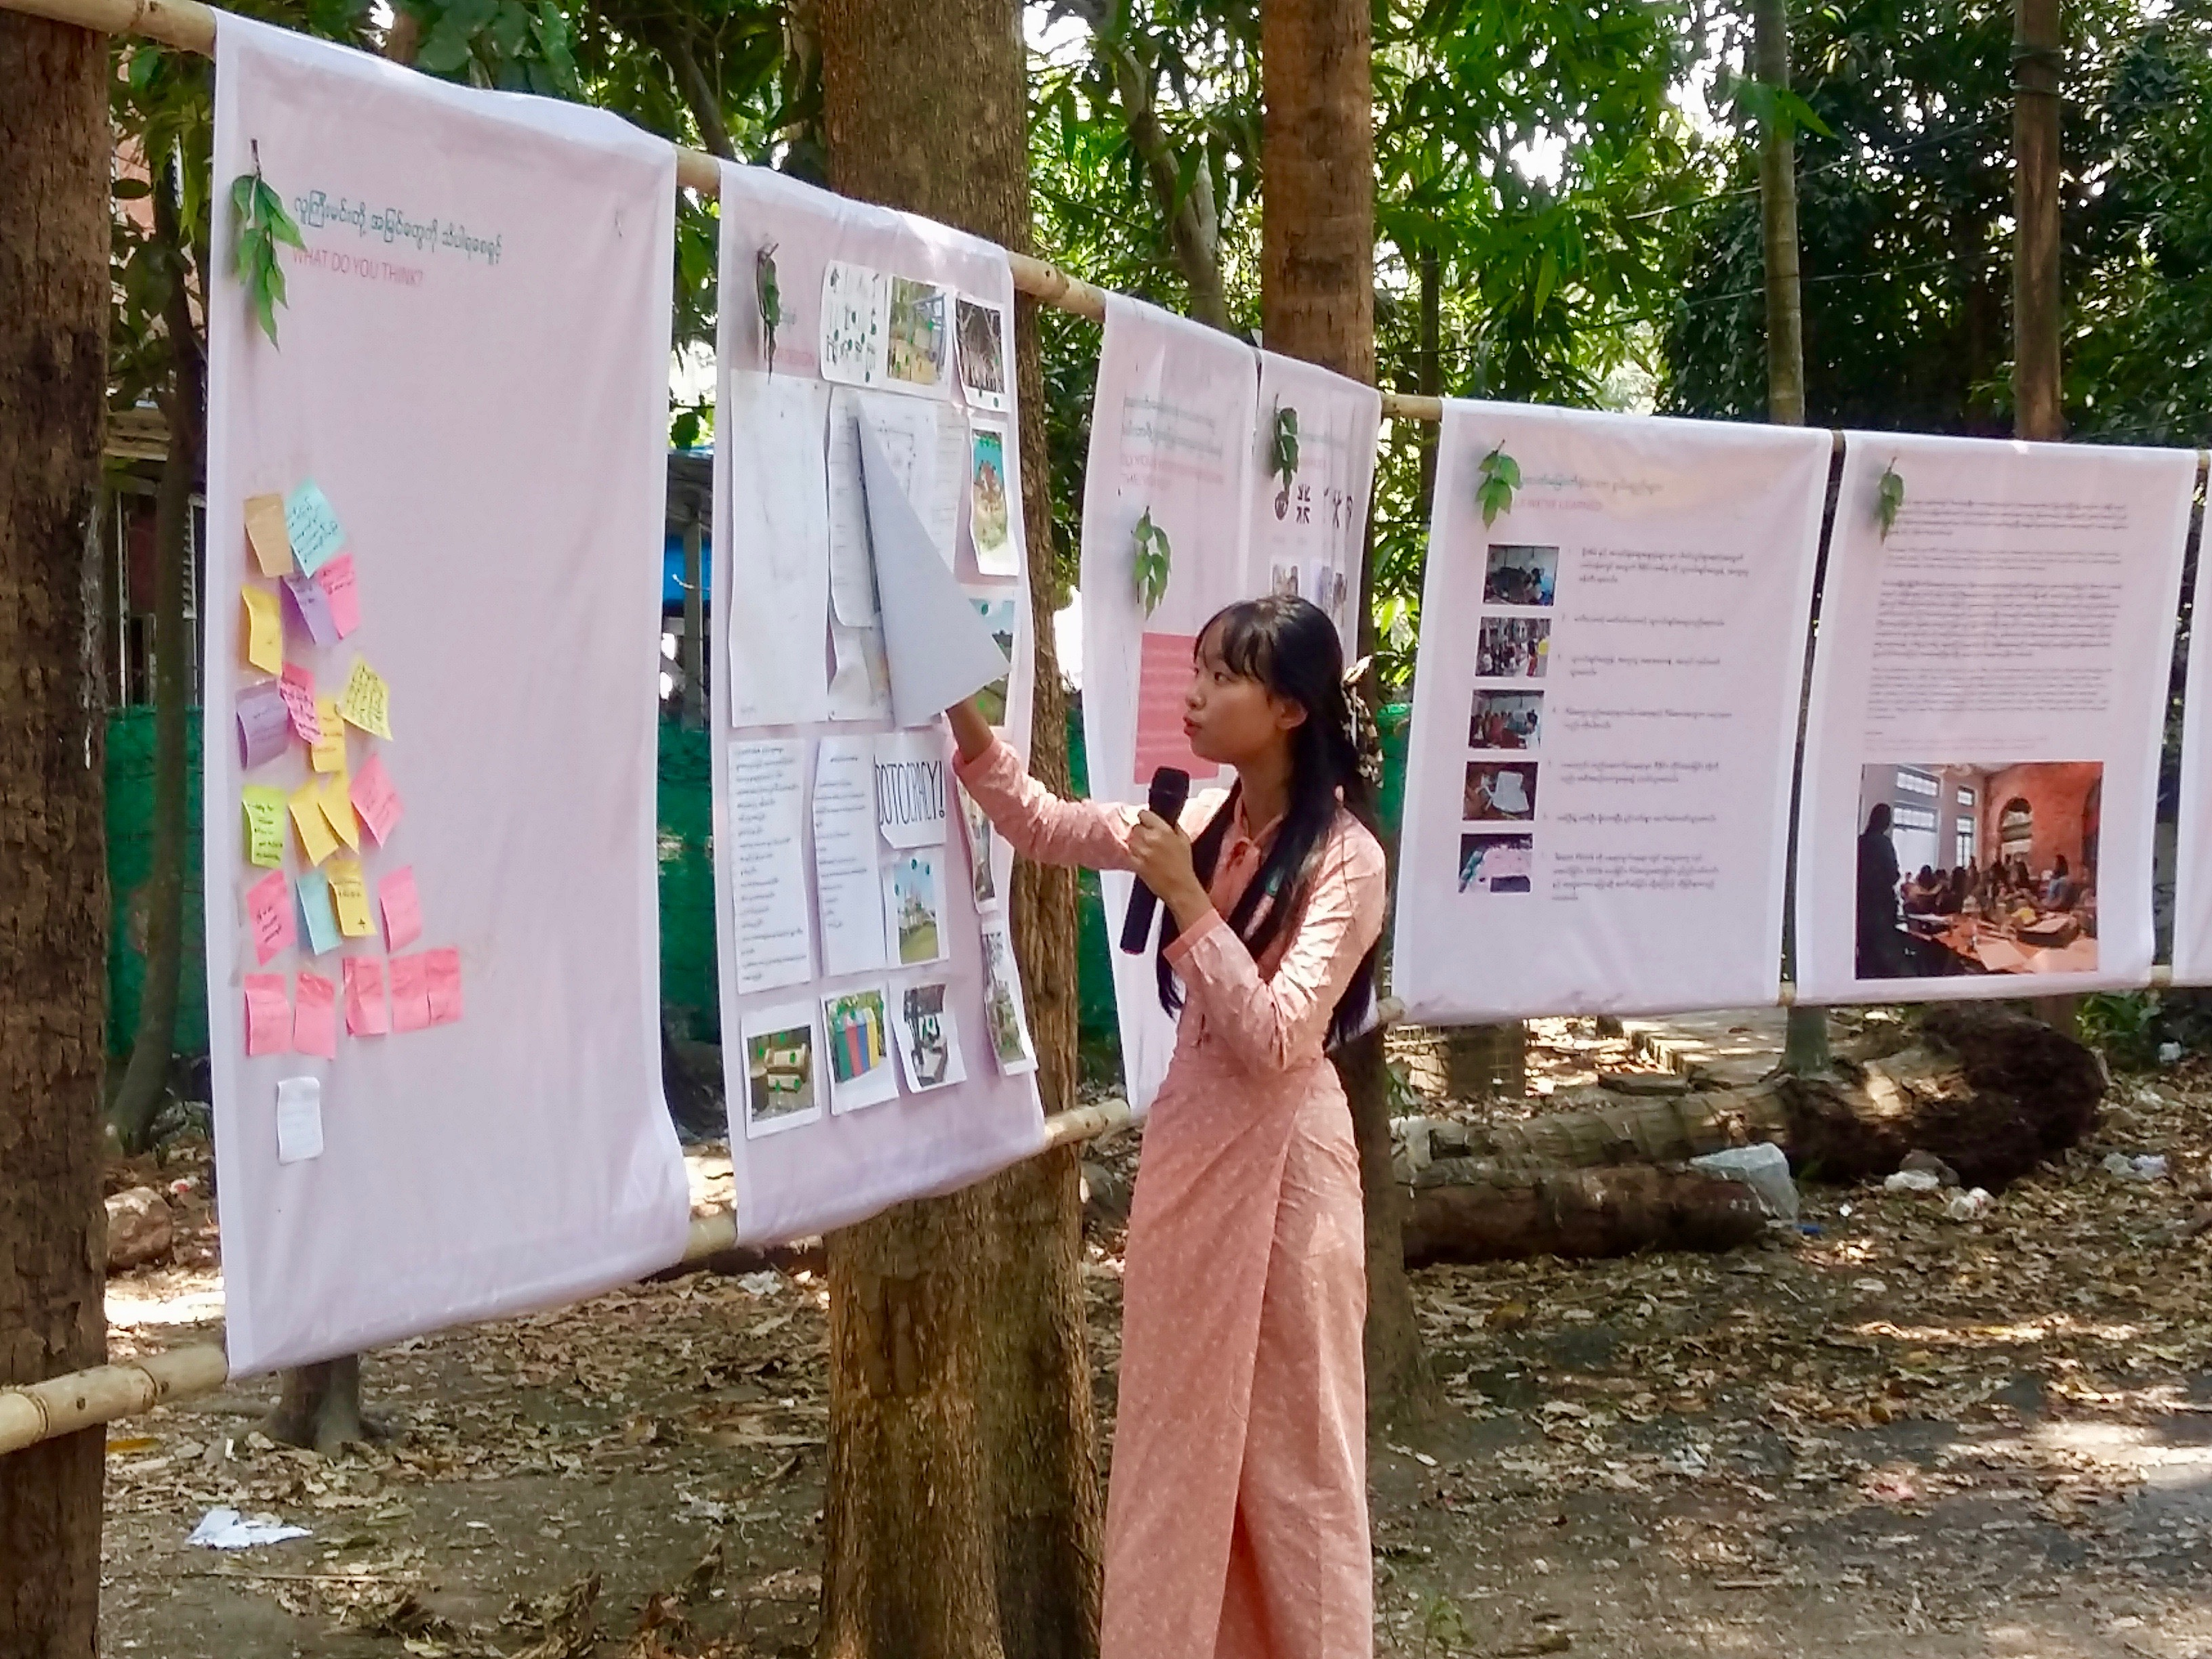 Hsu Linn Htet, 17, is one of 15 teenagers helping to design the park in Yankin township. (Ryan Phyoe)